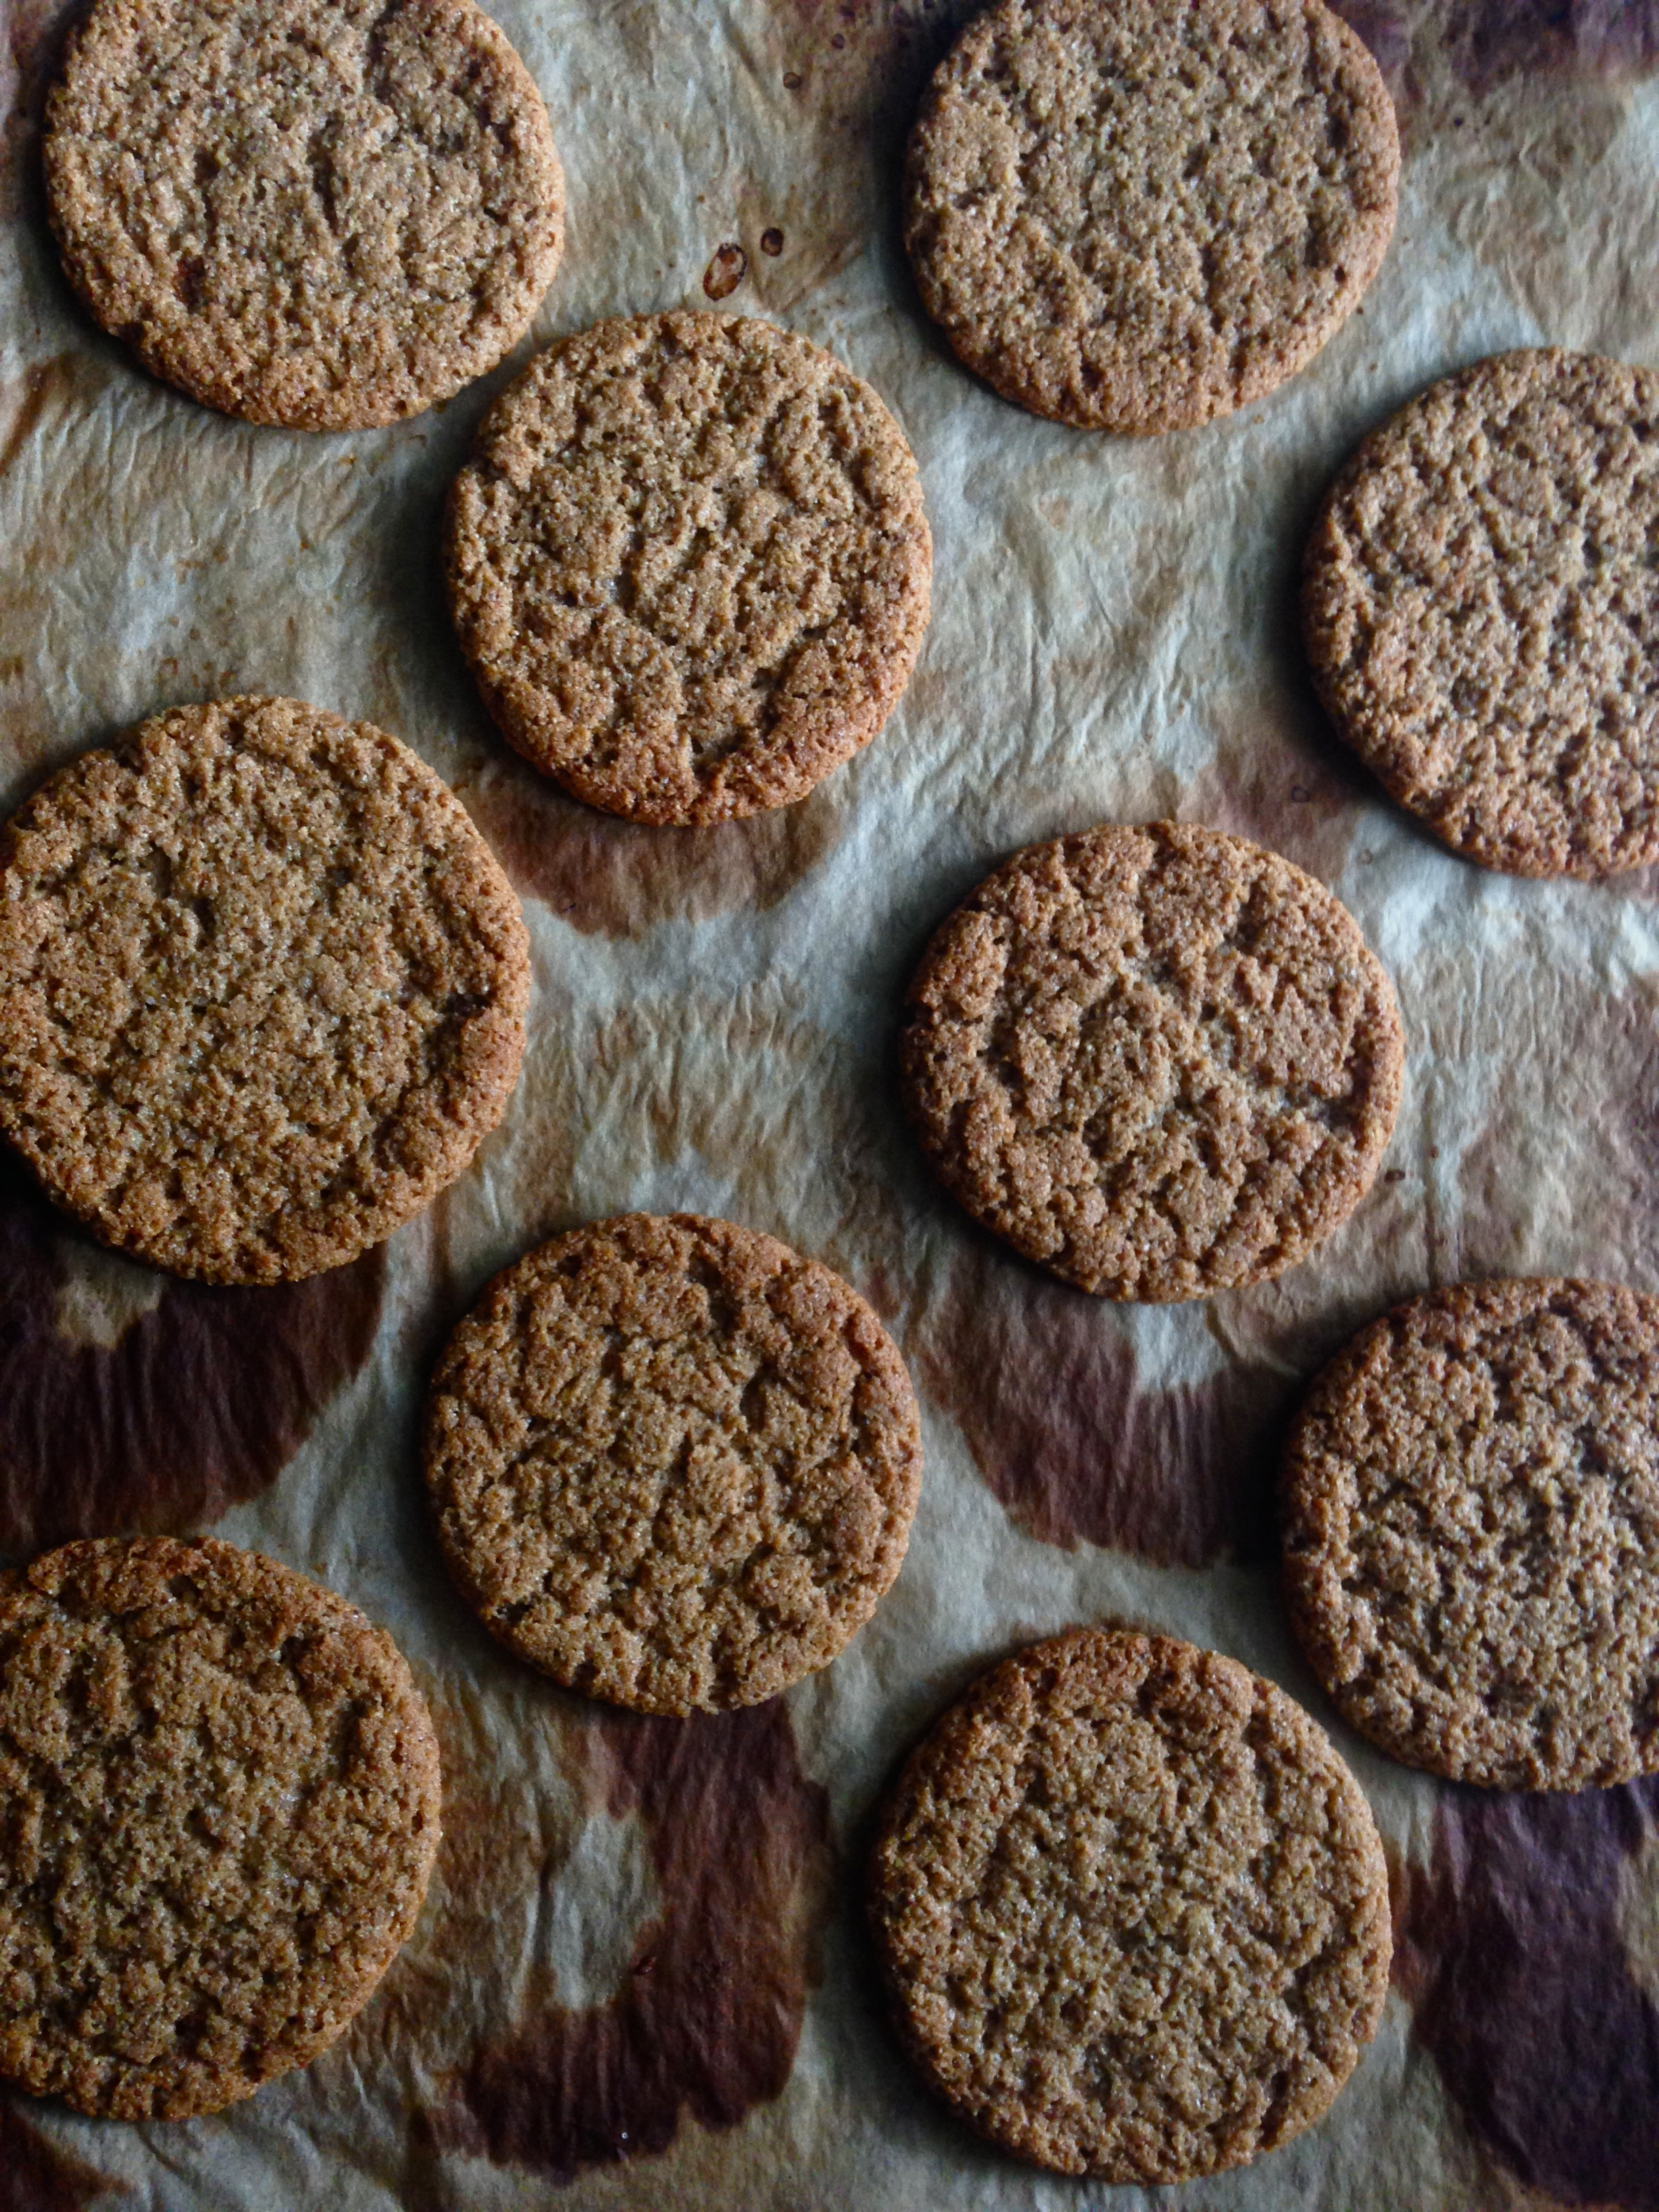 Chewy Sorghum Spice Cookies baked on recycled parchment paper.